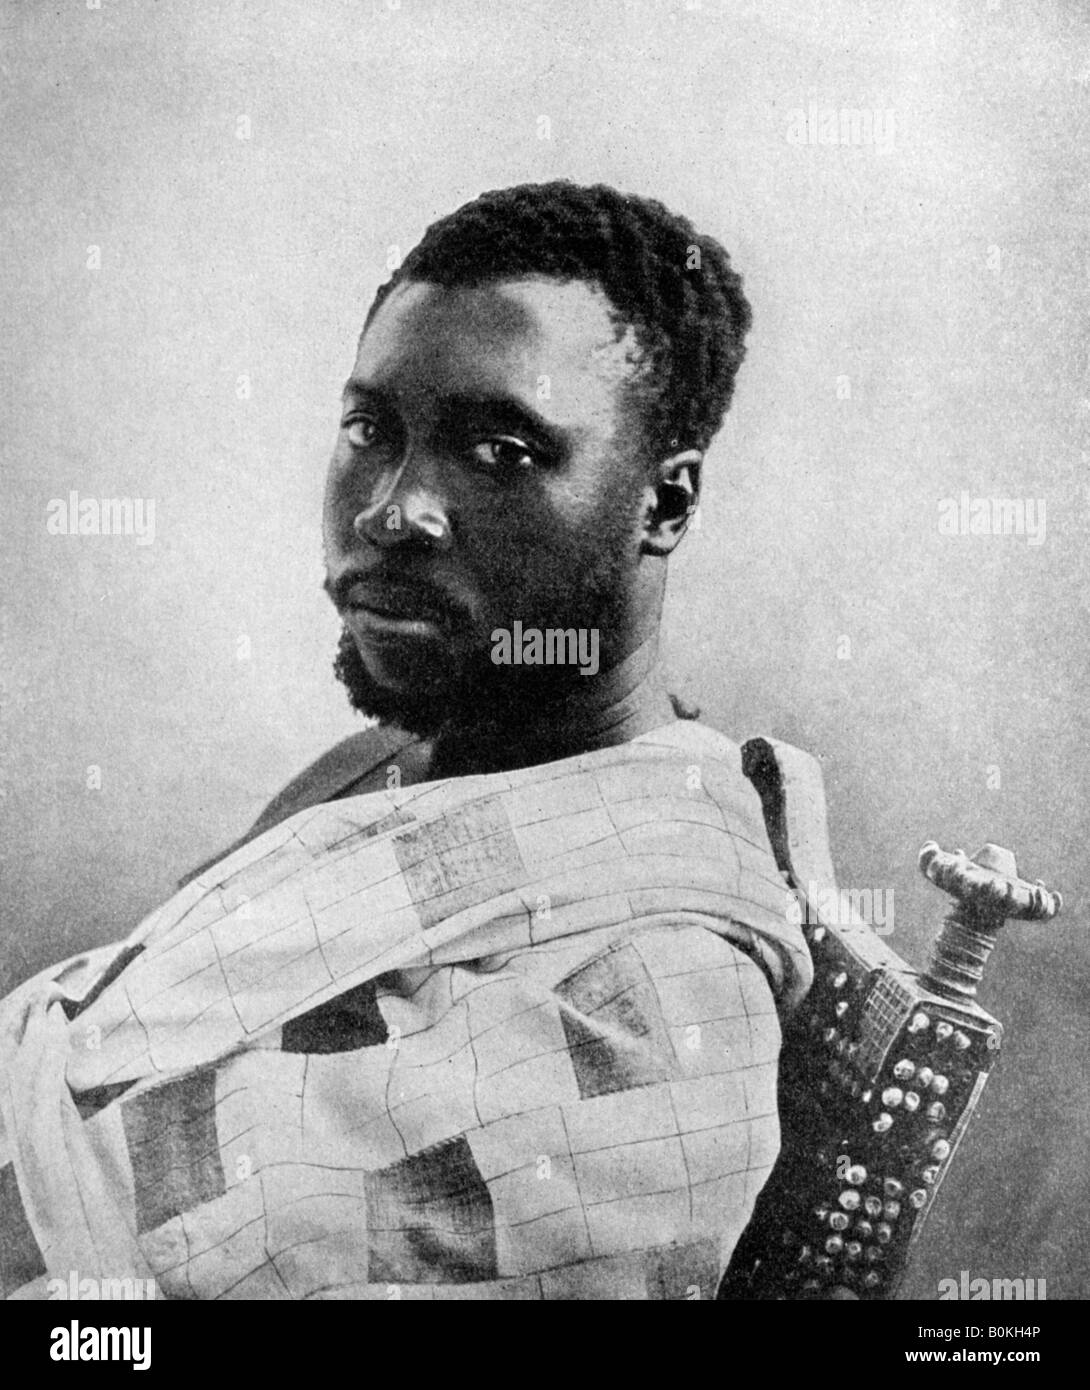 Prempeh, last of the Ashanti kings, Ghana, 1922.Artist: PA McCann - Stock Image